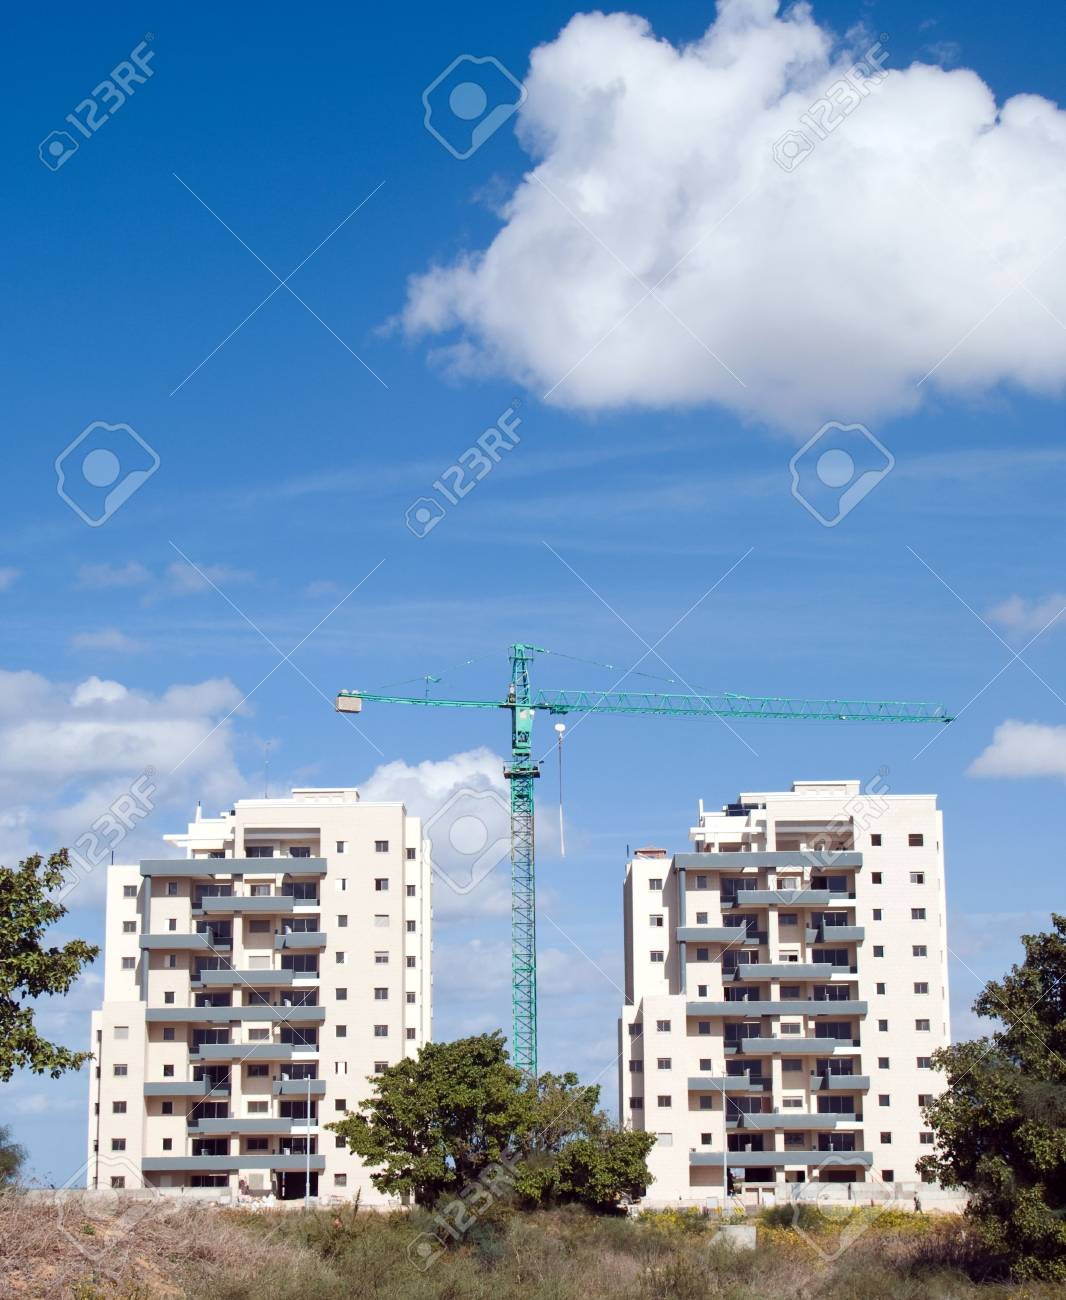 modern building on a background of blue sky Stock Photo - 3932410